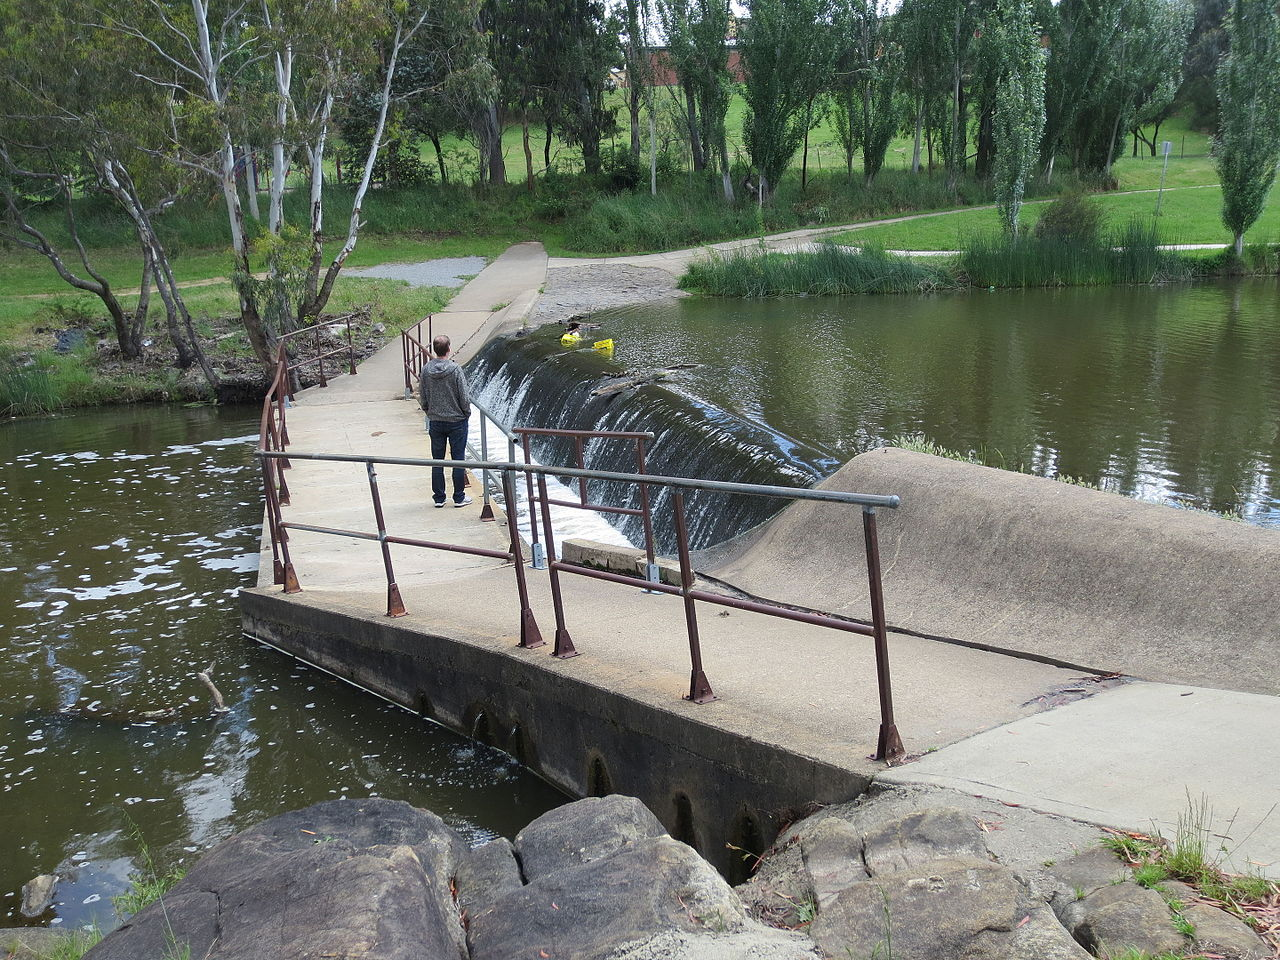 A weir on the Yass River directly upstream from a shared pedestrian/cycle river crossing (Person for scale)